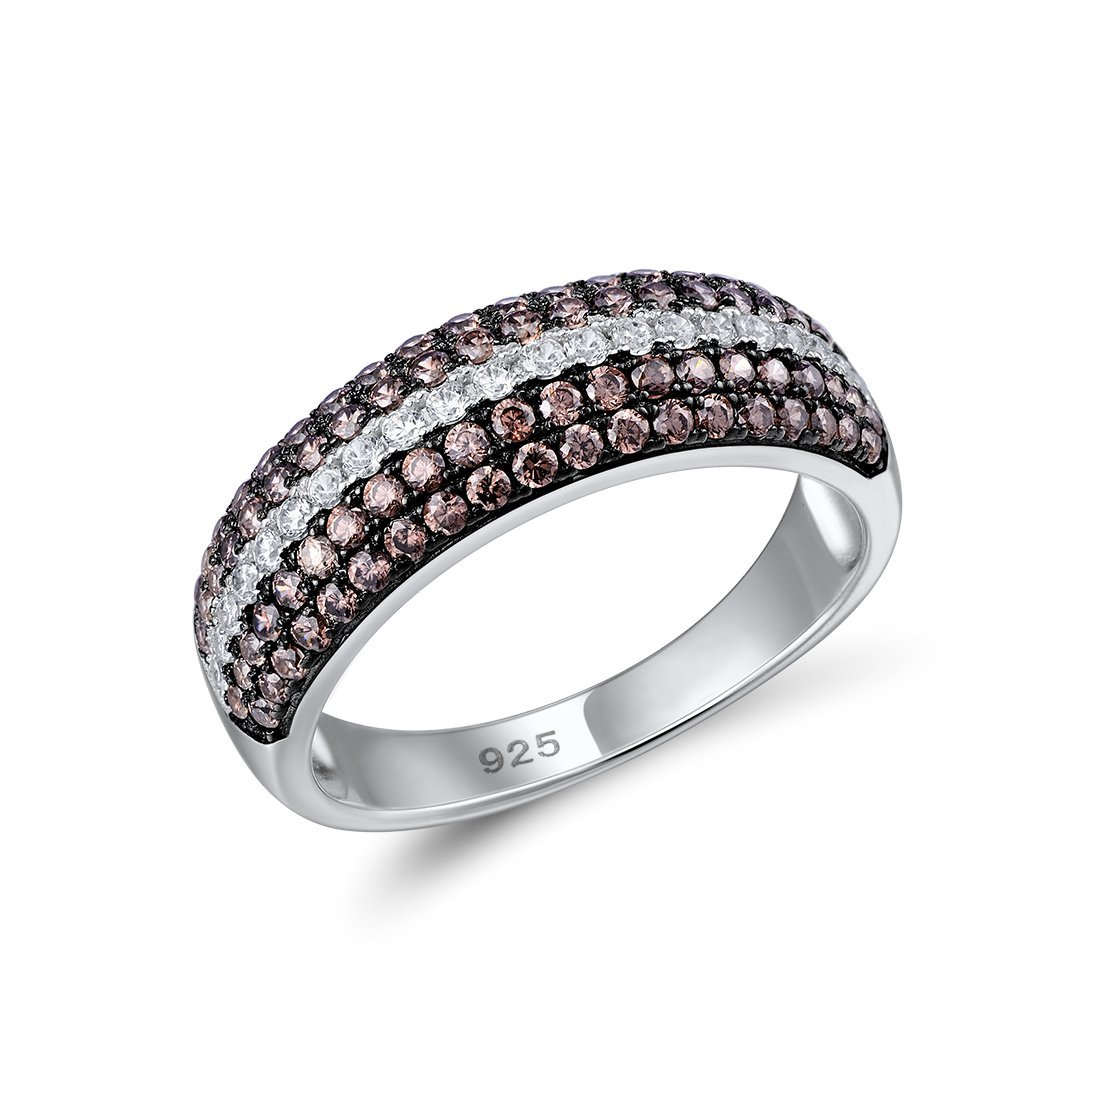 Santuzza 925 Sterling Silver Ring For Women Chocolate Cubic Zirconia Round Ring Party Fine Jewelry (6) by Santuzza (Image #1)